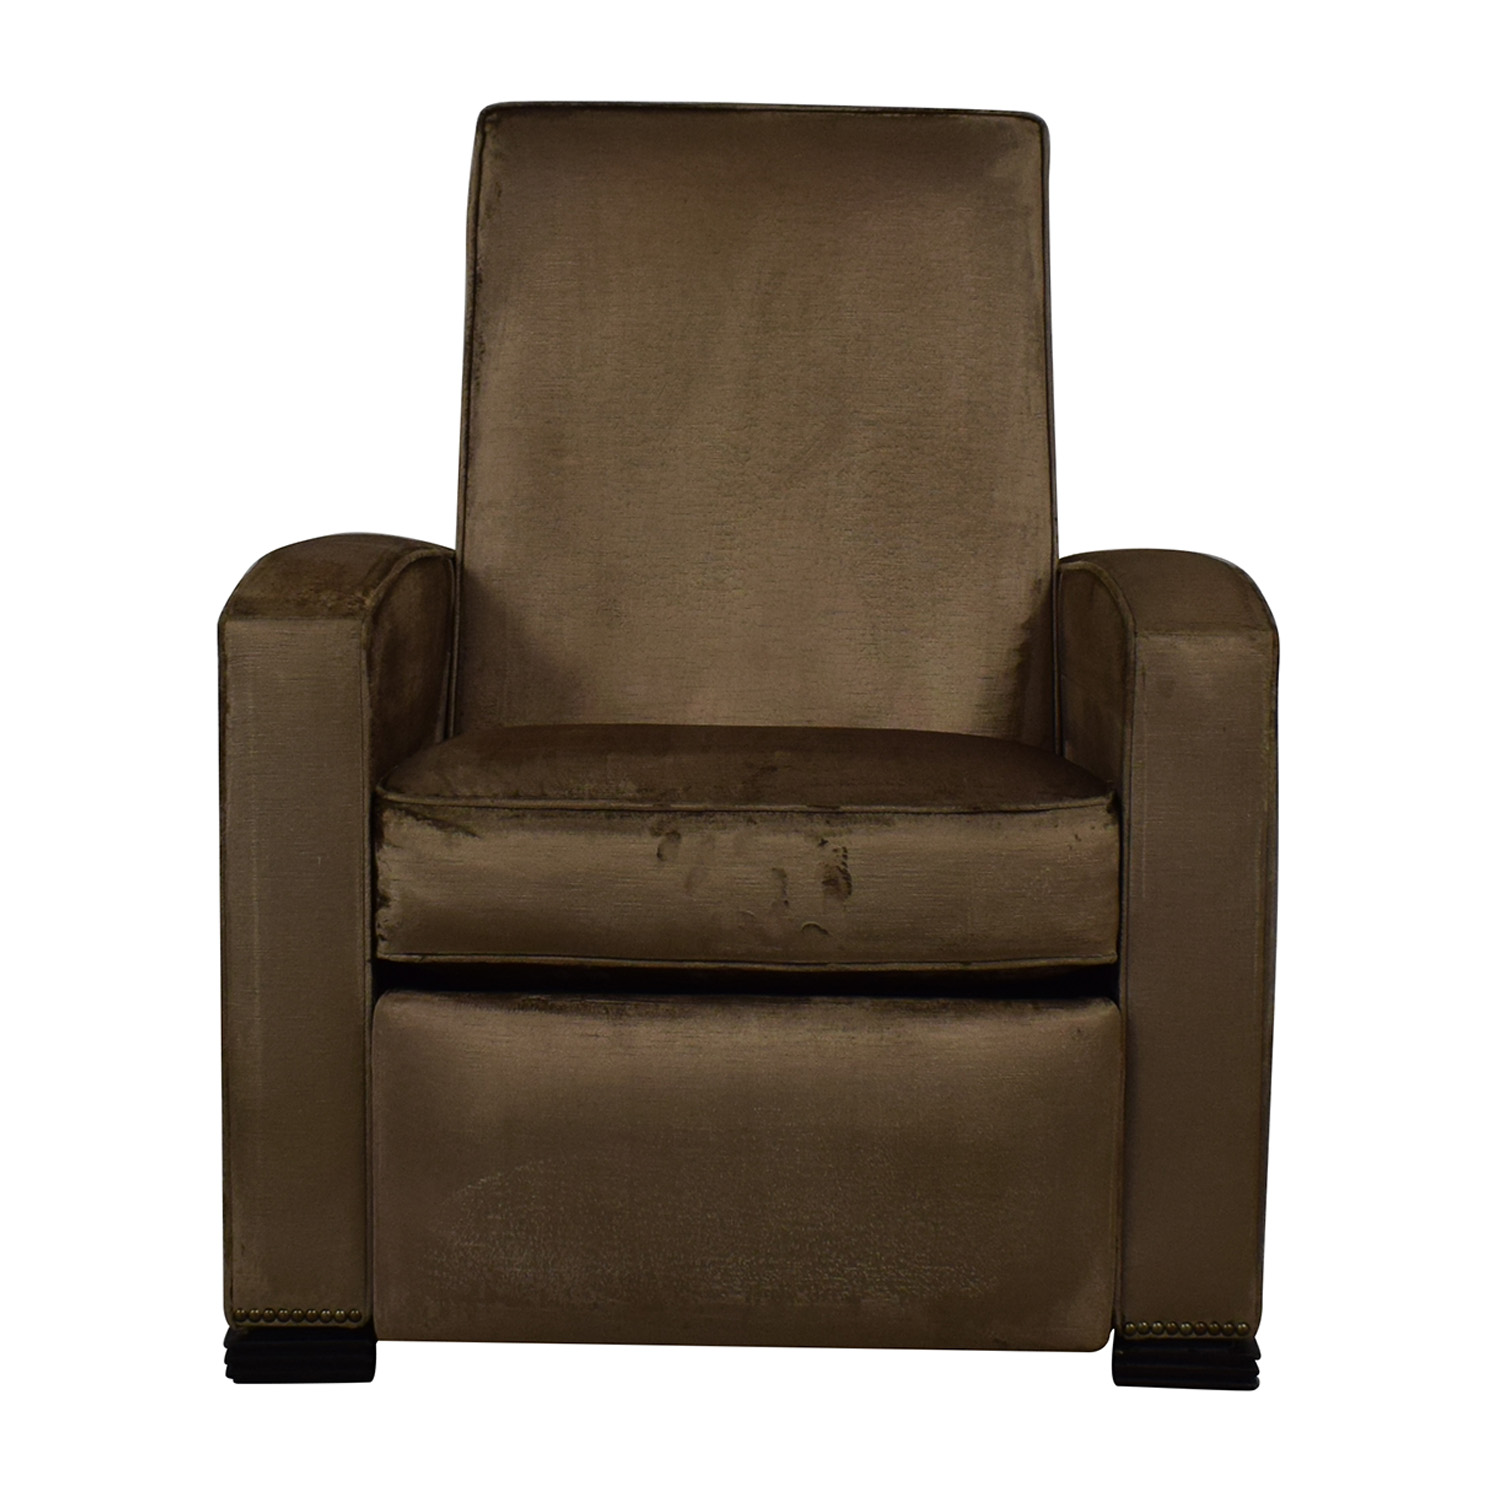 Kravet Recliner Chair Kravet